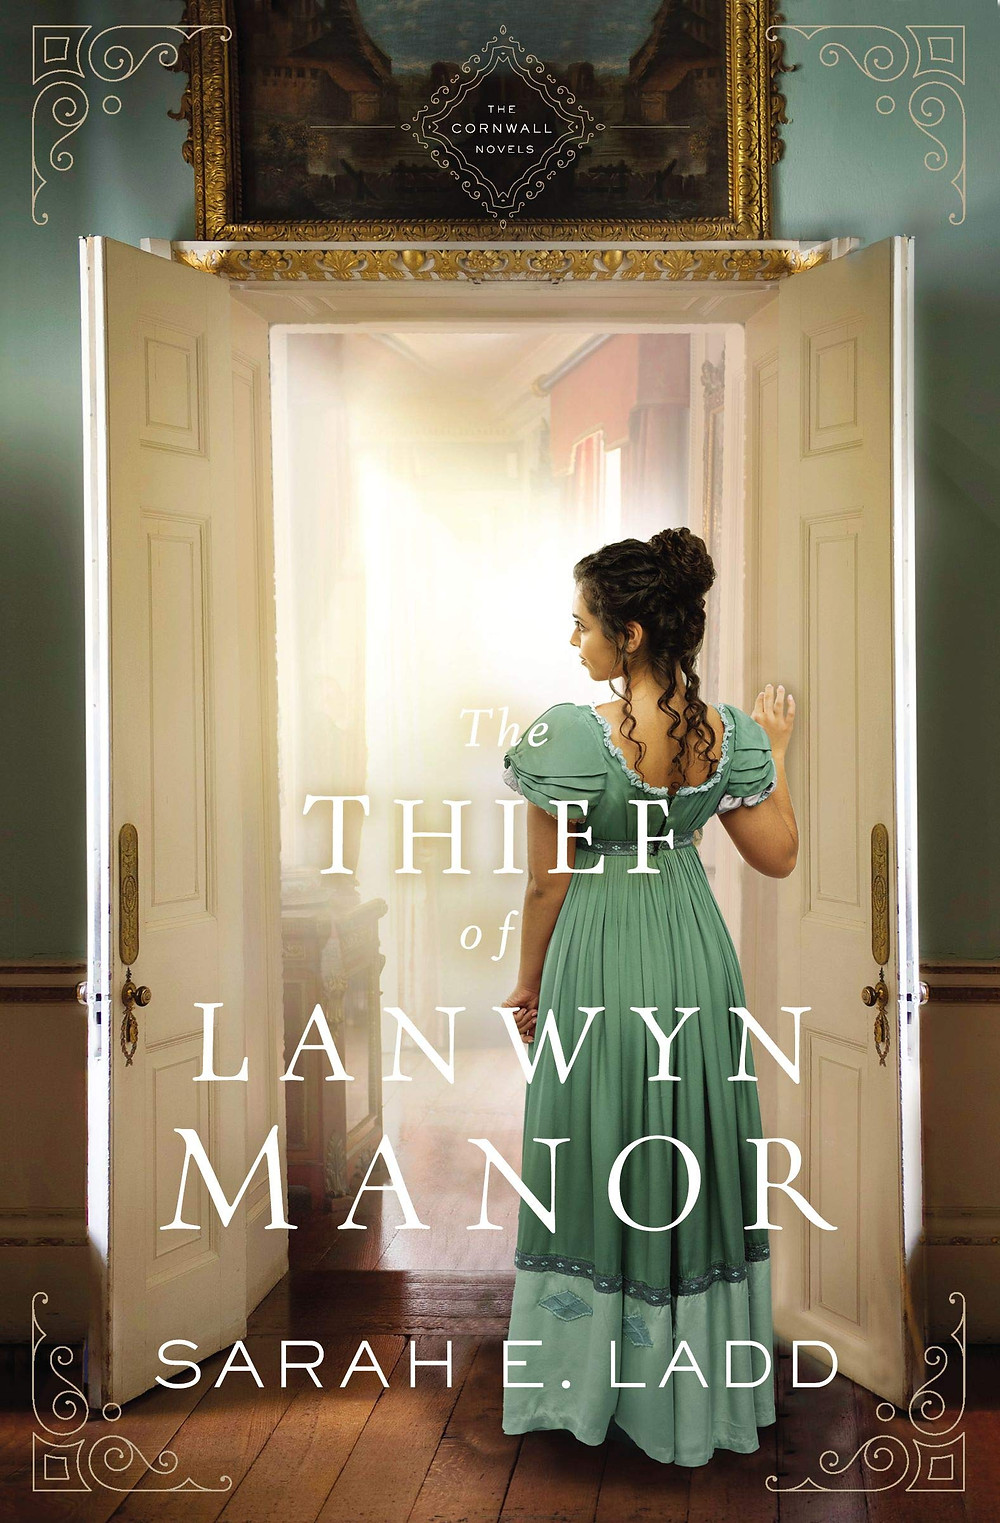 The Thief of Lanwyn Manor by Sarah E. Ladd - Book Recommendation